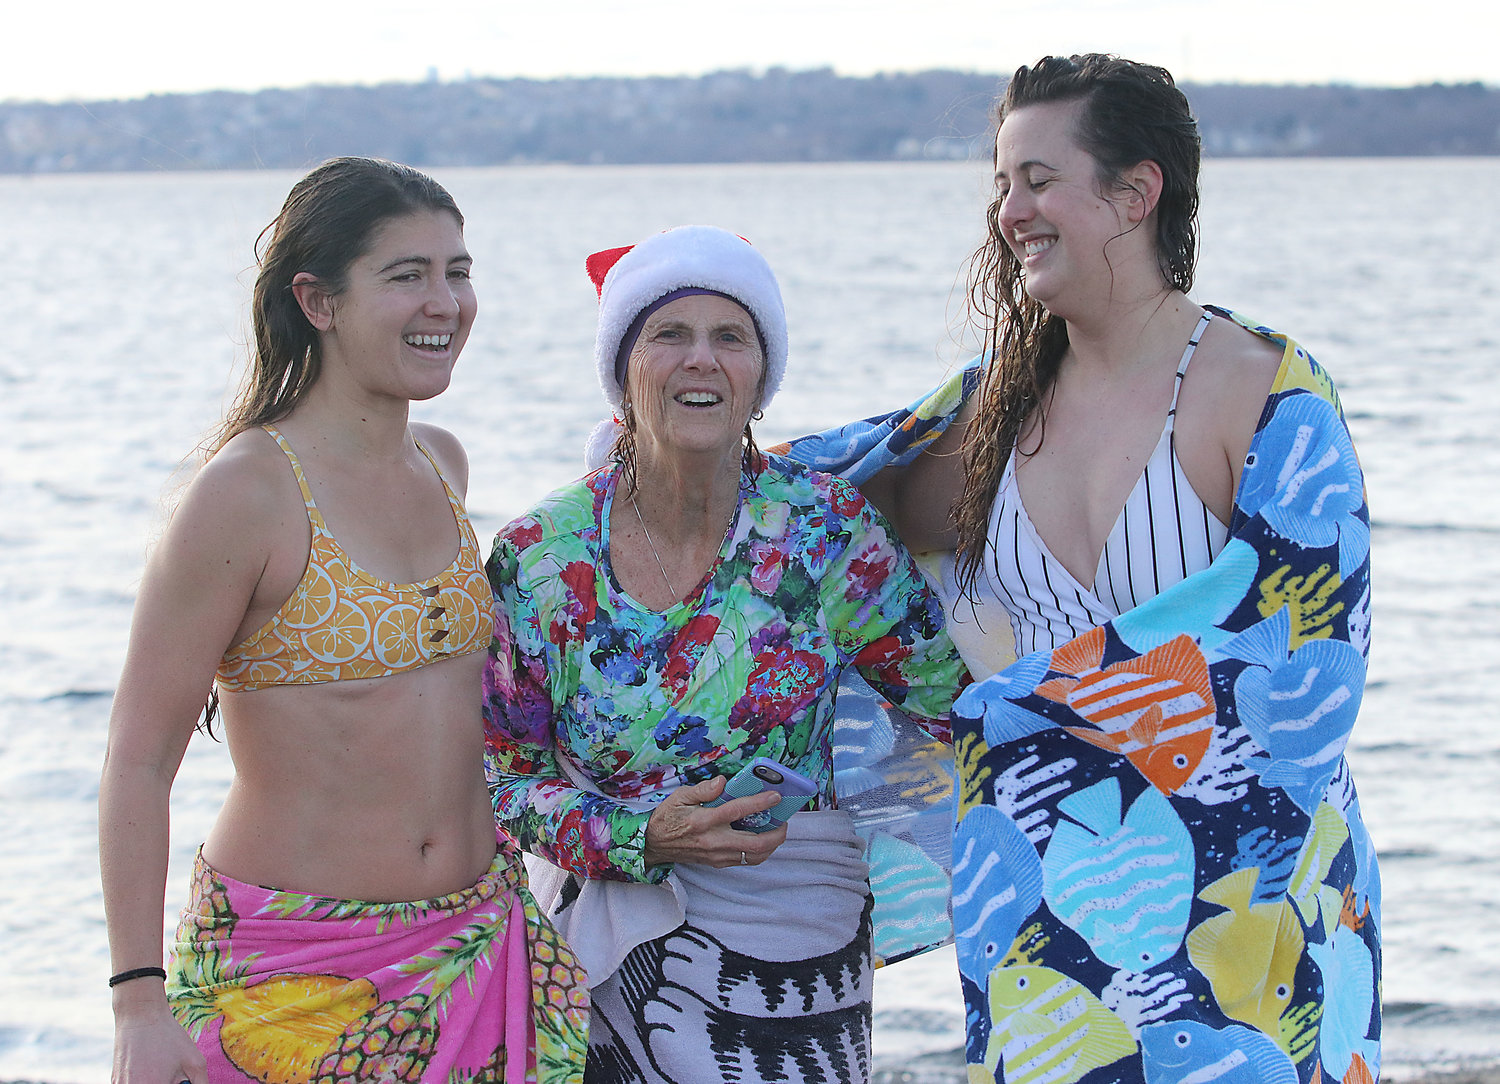 Stephanie Jones, Pam Begg and Allie Karzenski pose after running into the water Wednesday, January 1.